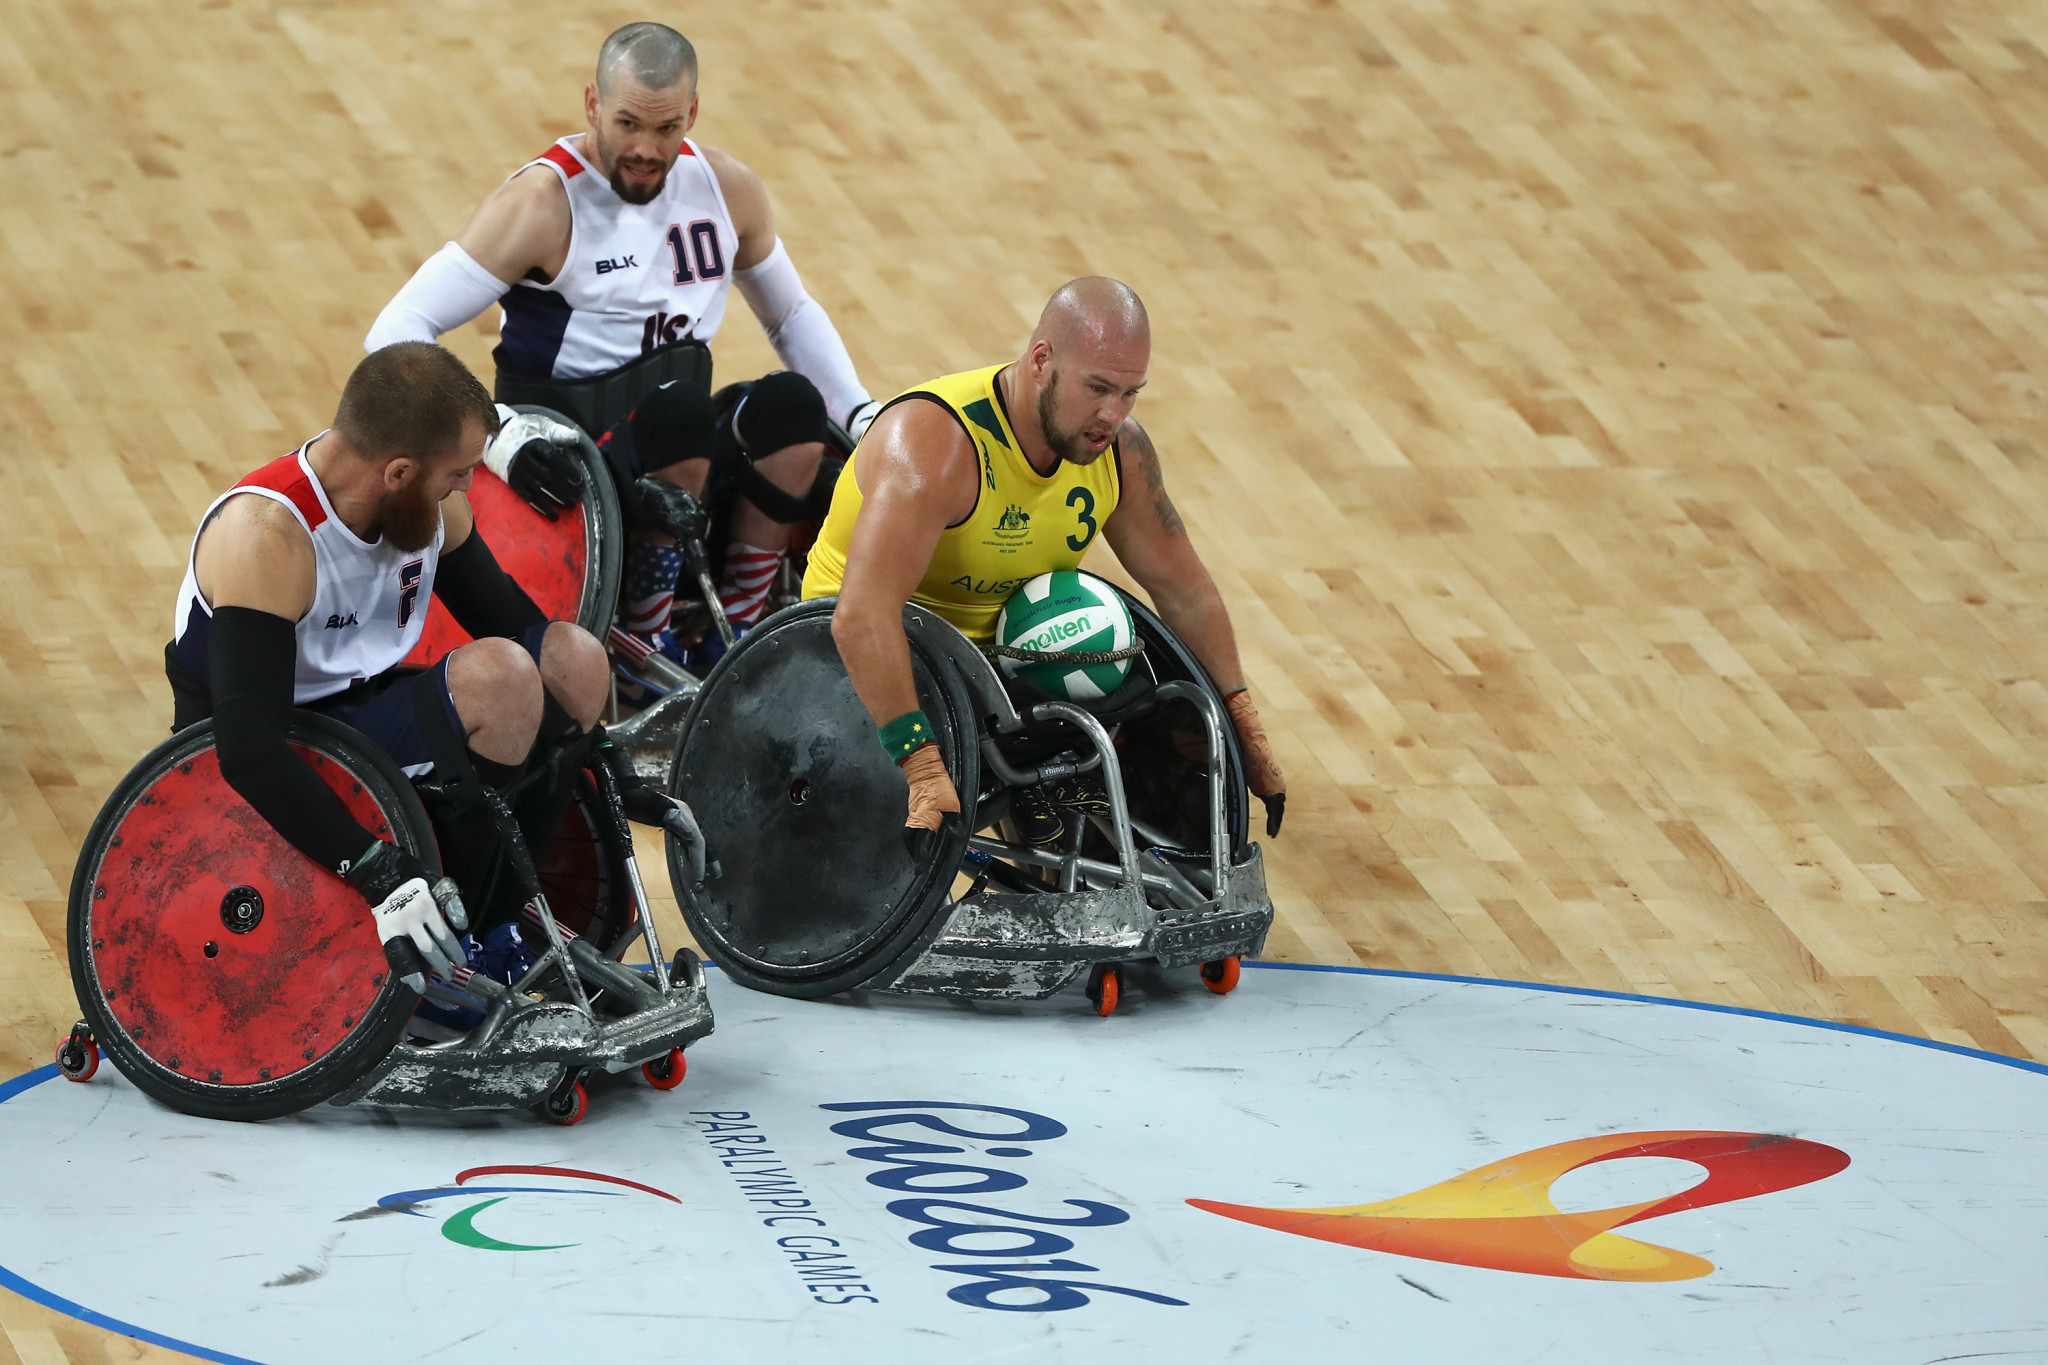 The winner of the wheelchair rugby contest at the Paralympics will no longer automatically qualify for the World Championships ©Getty Images